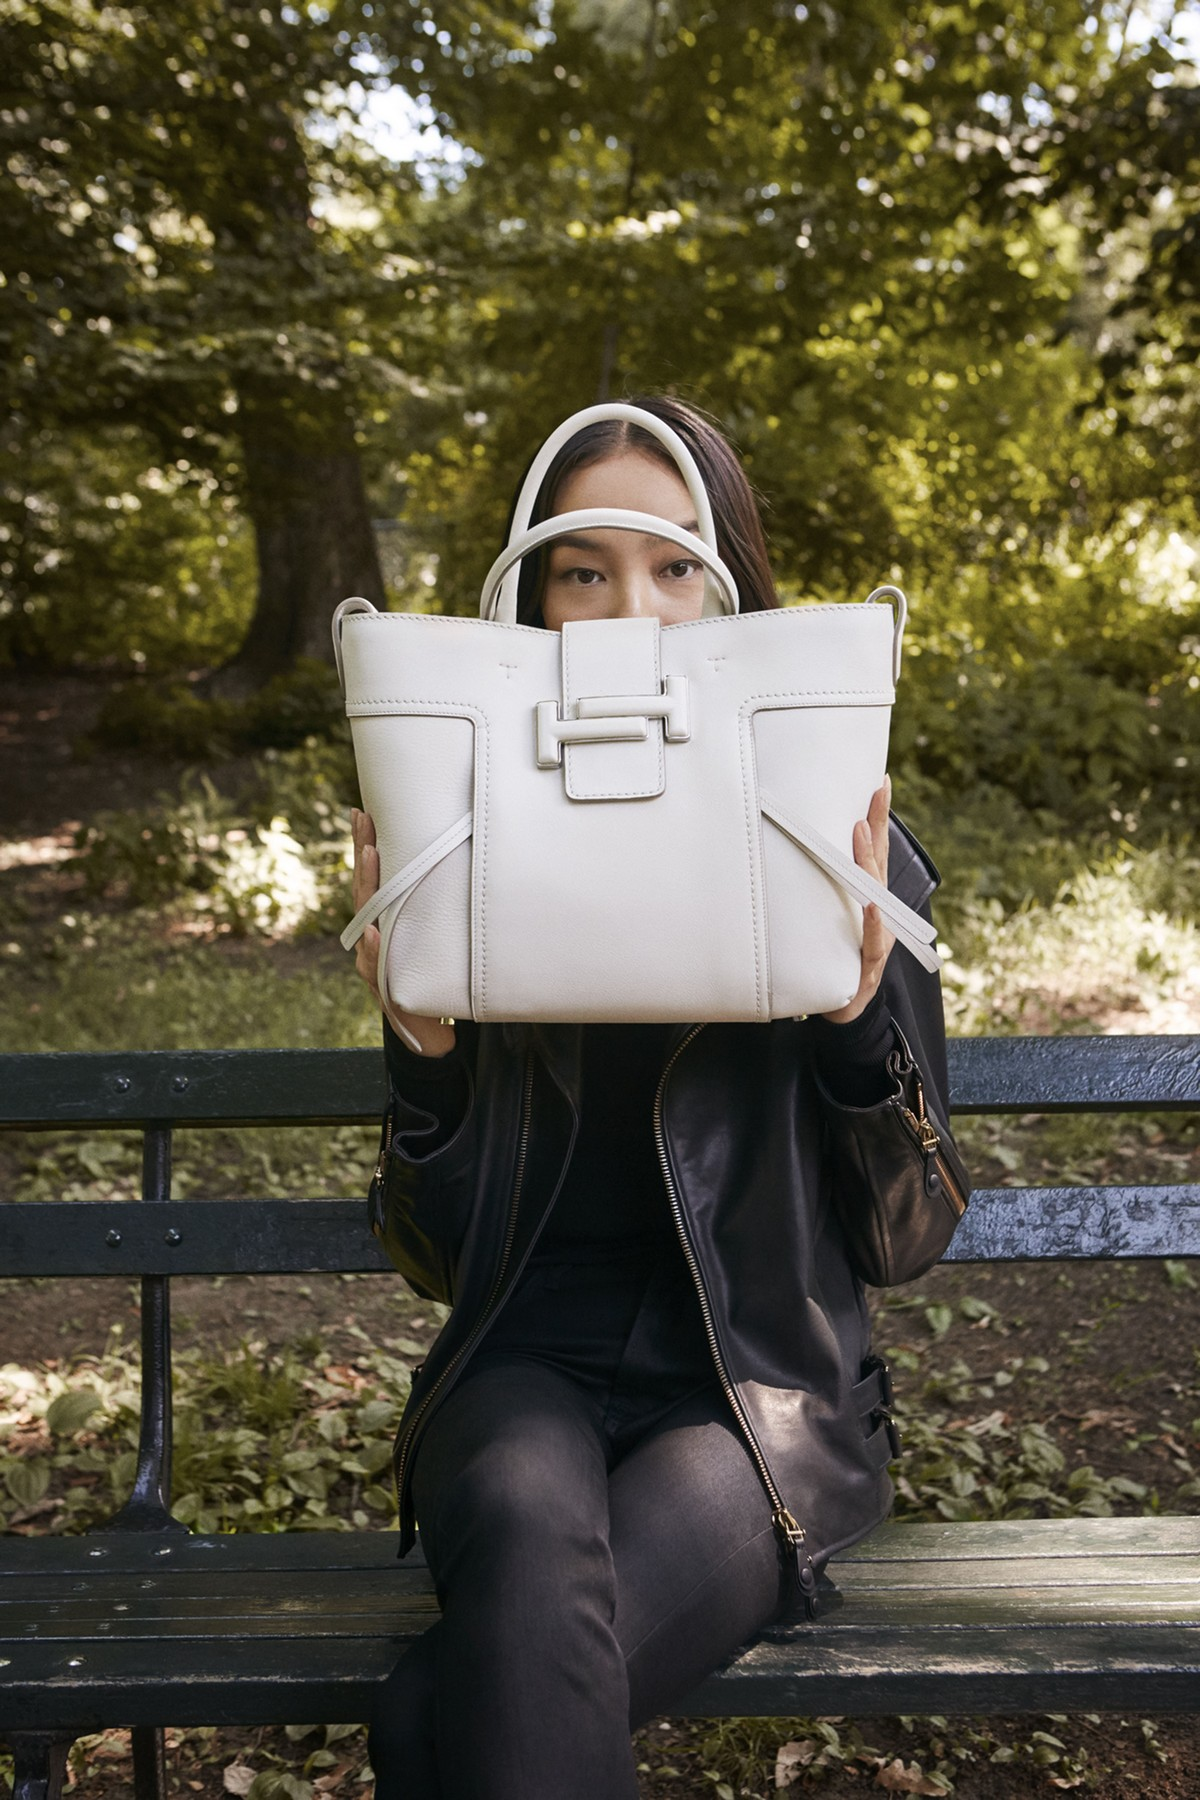 tods campagna autunno inverno 2018 2019 15